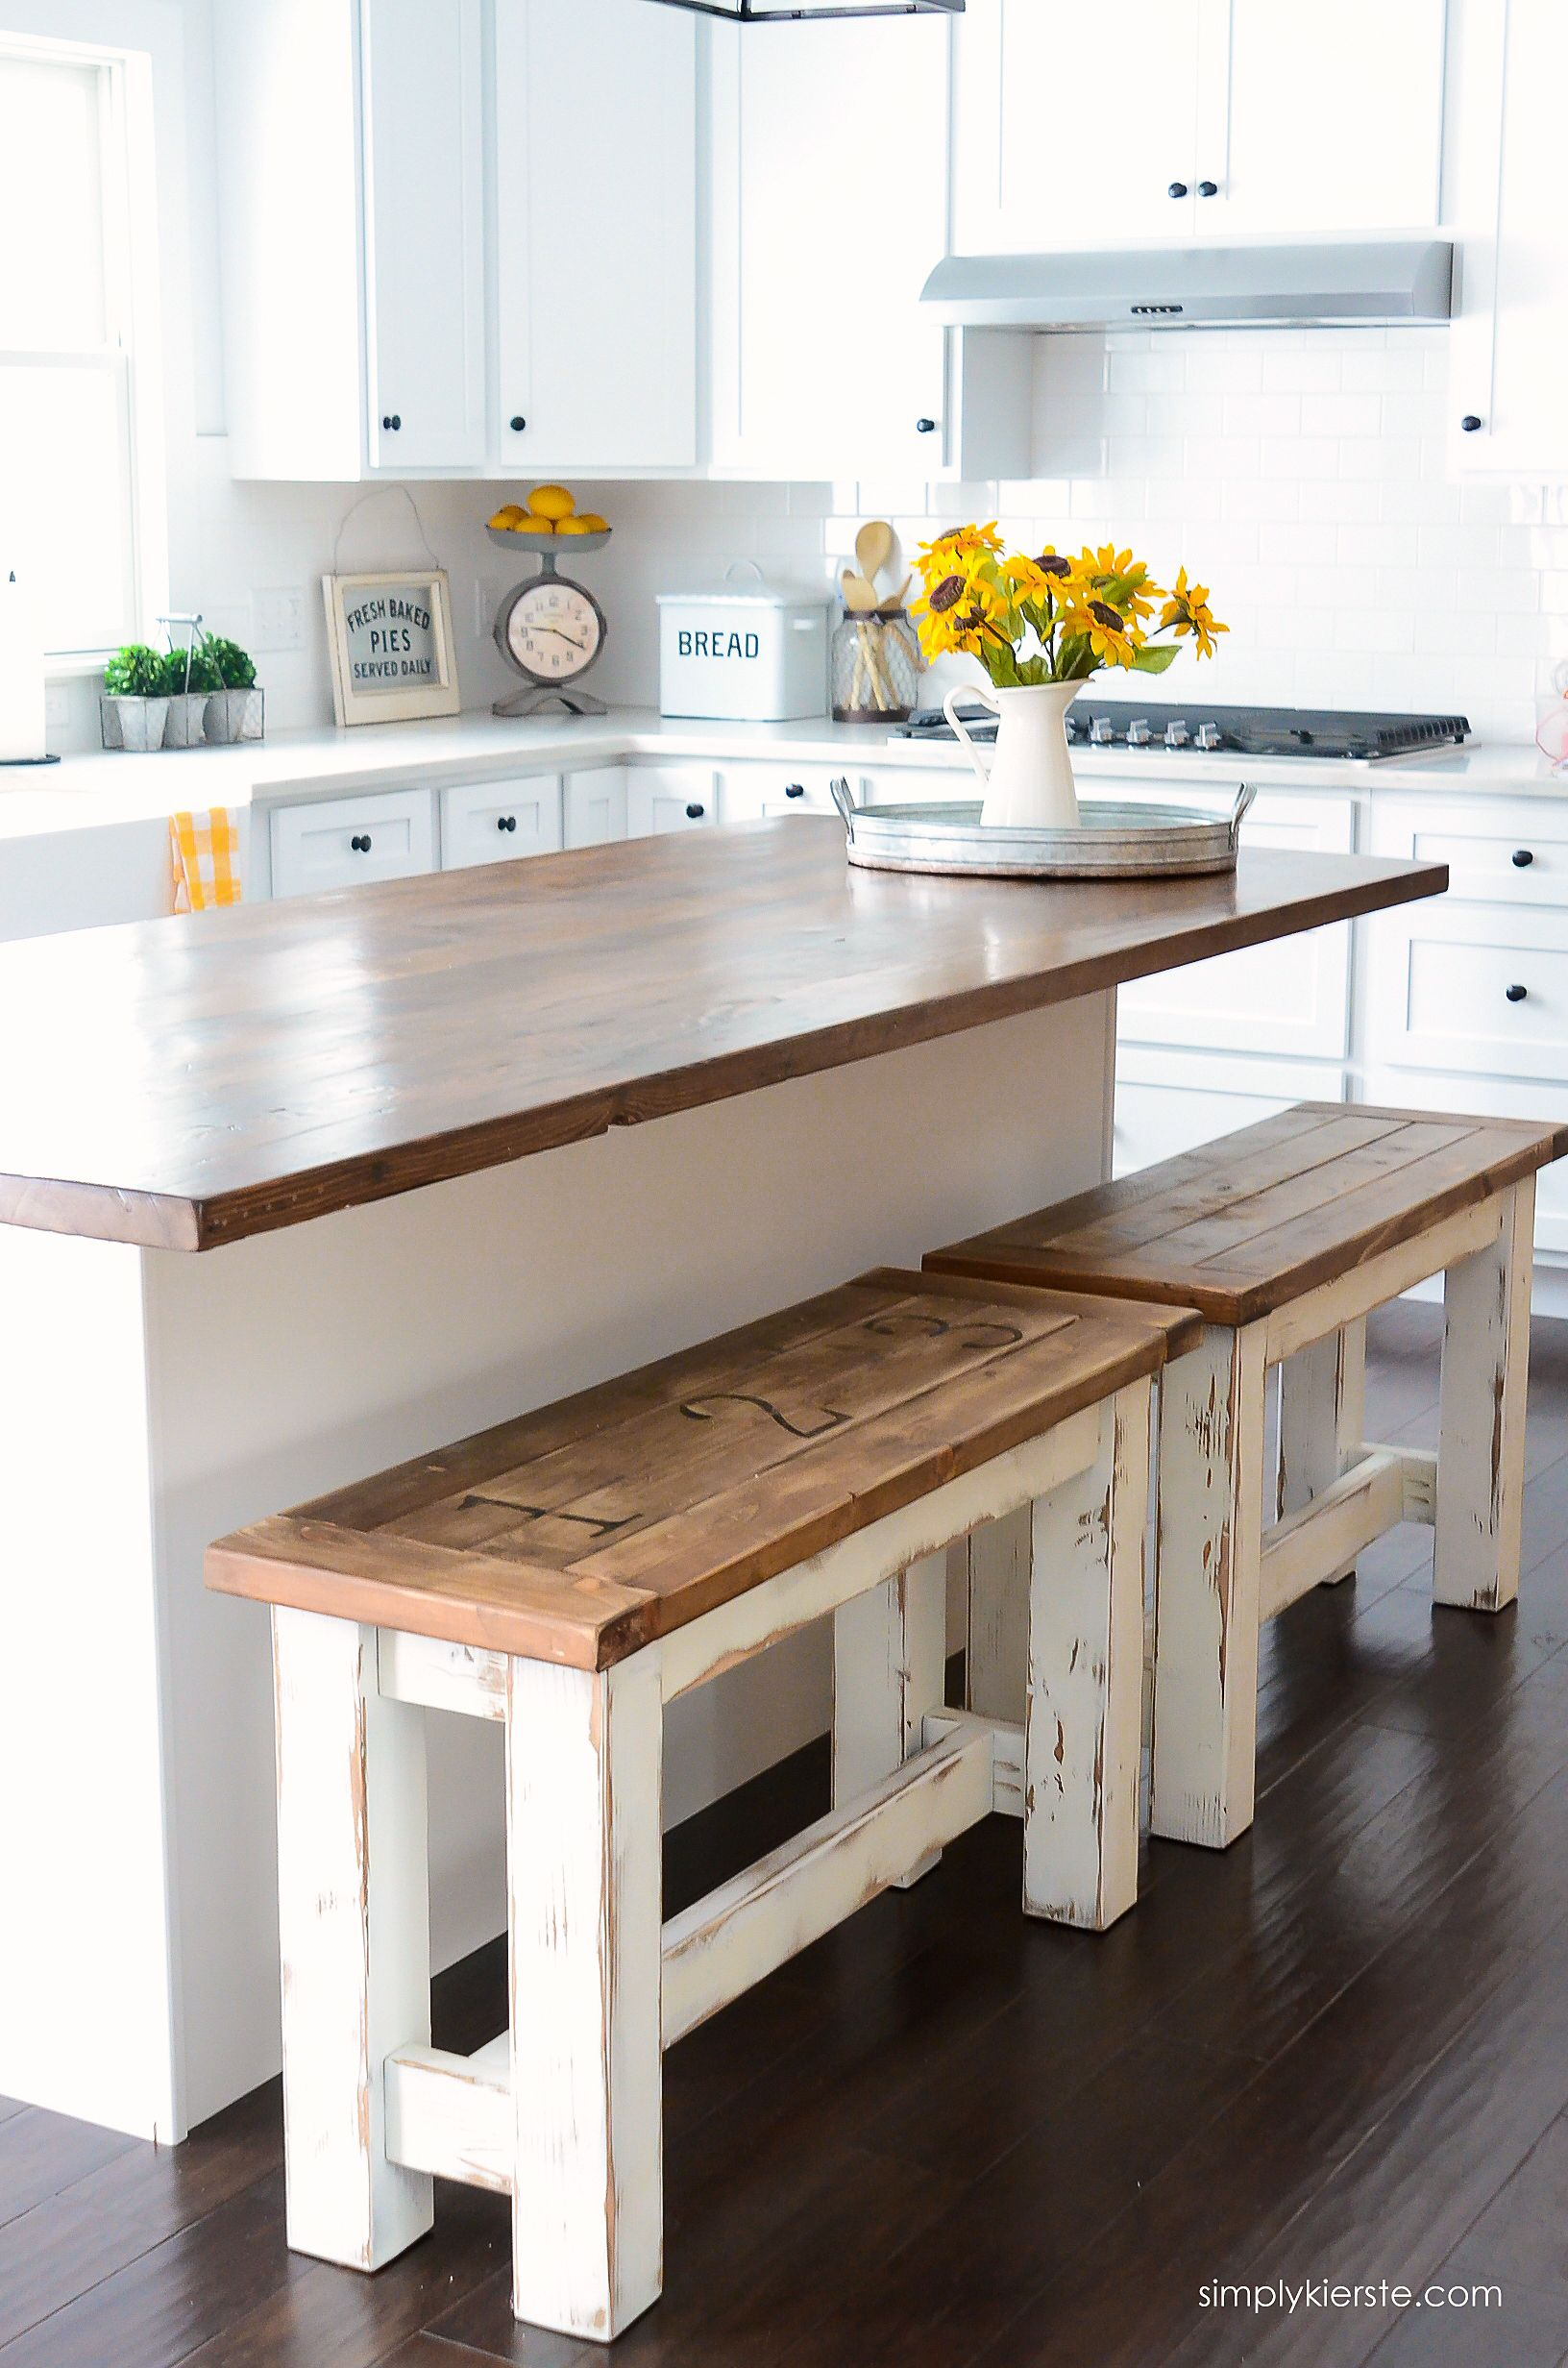 Diy kitchen benches kitchen benches farmhouse style and for Diy cooking